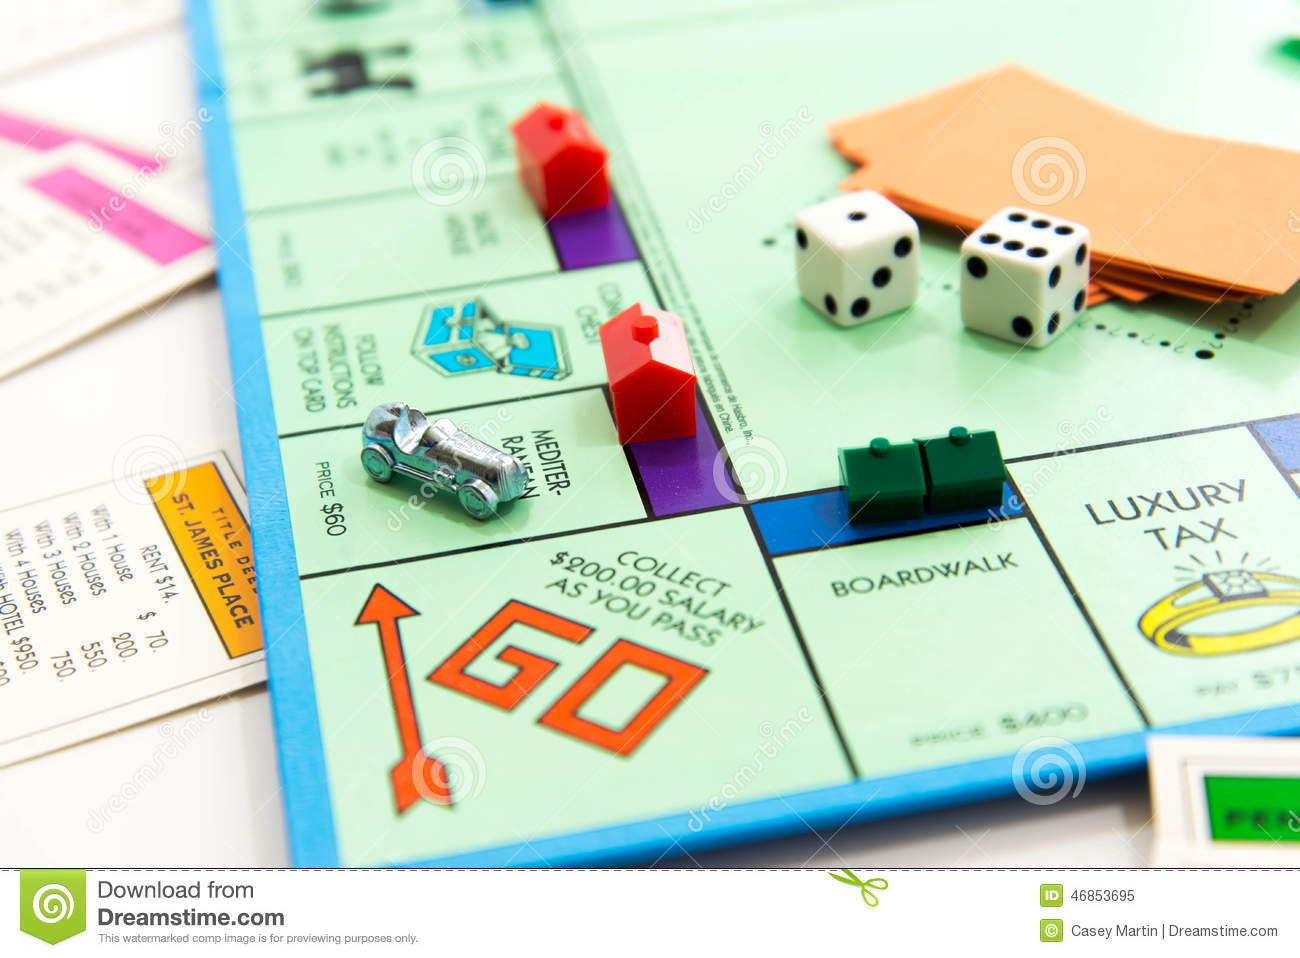 Monopoly Game Design